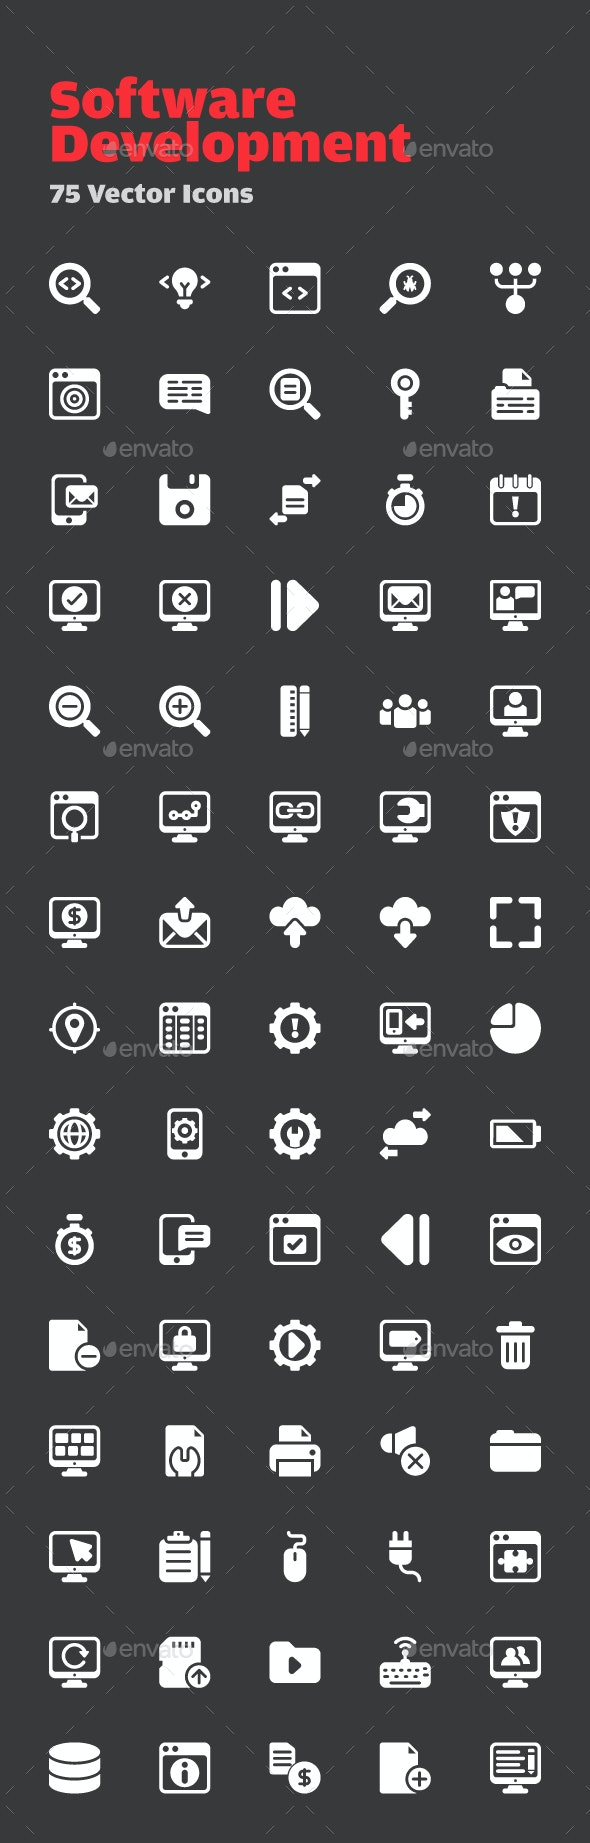 72 Software Development Vector Icons - Icons